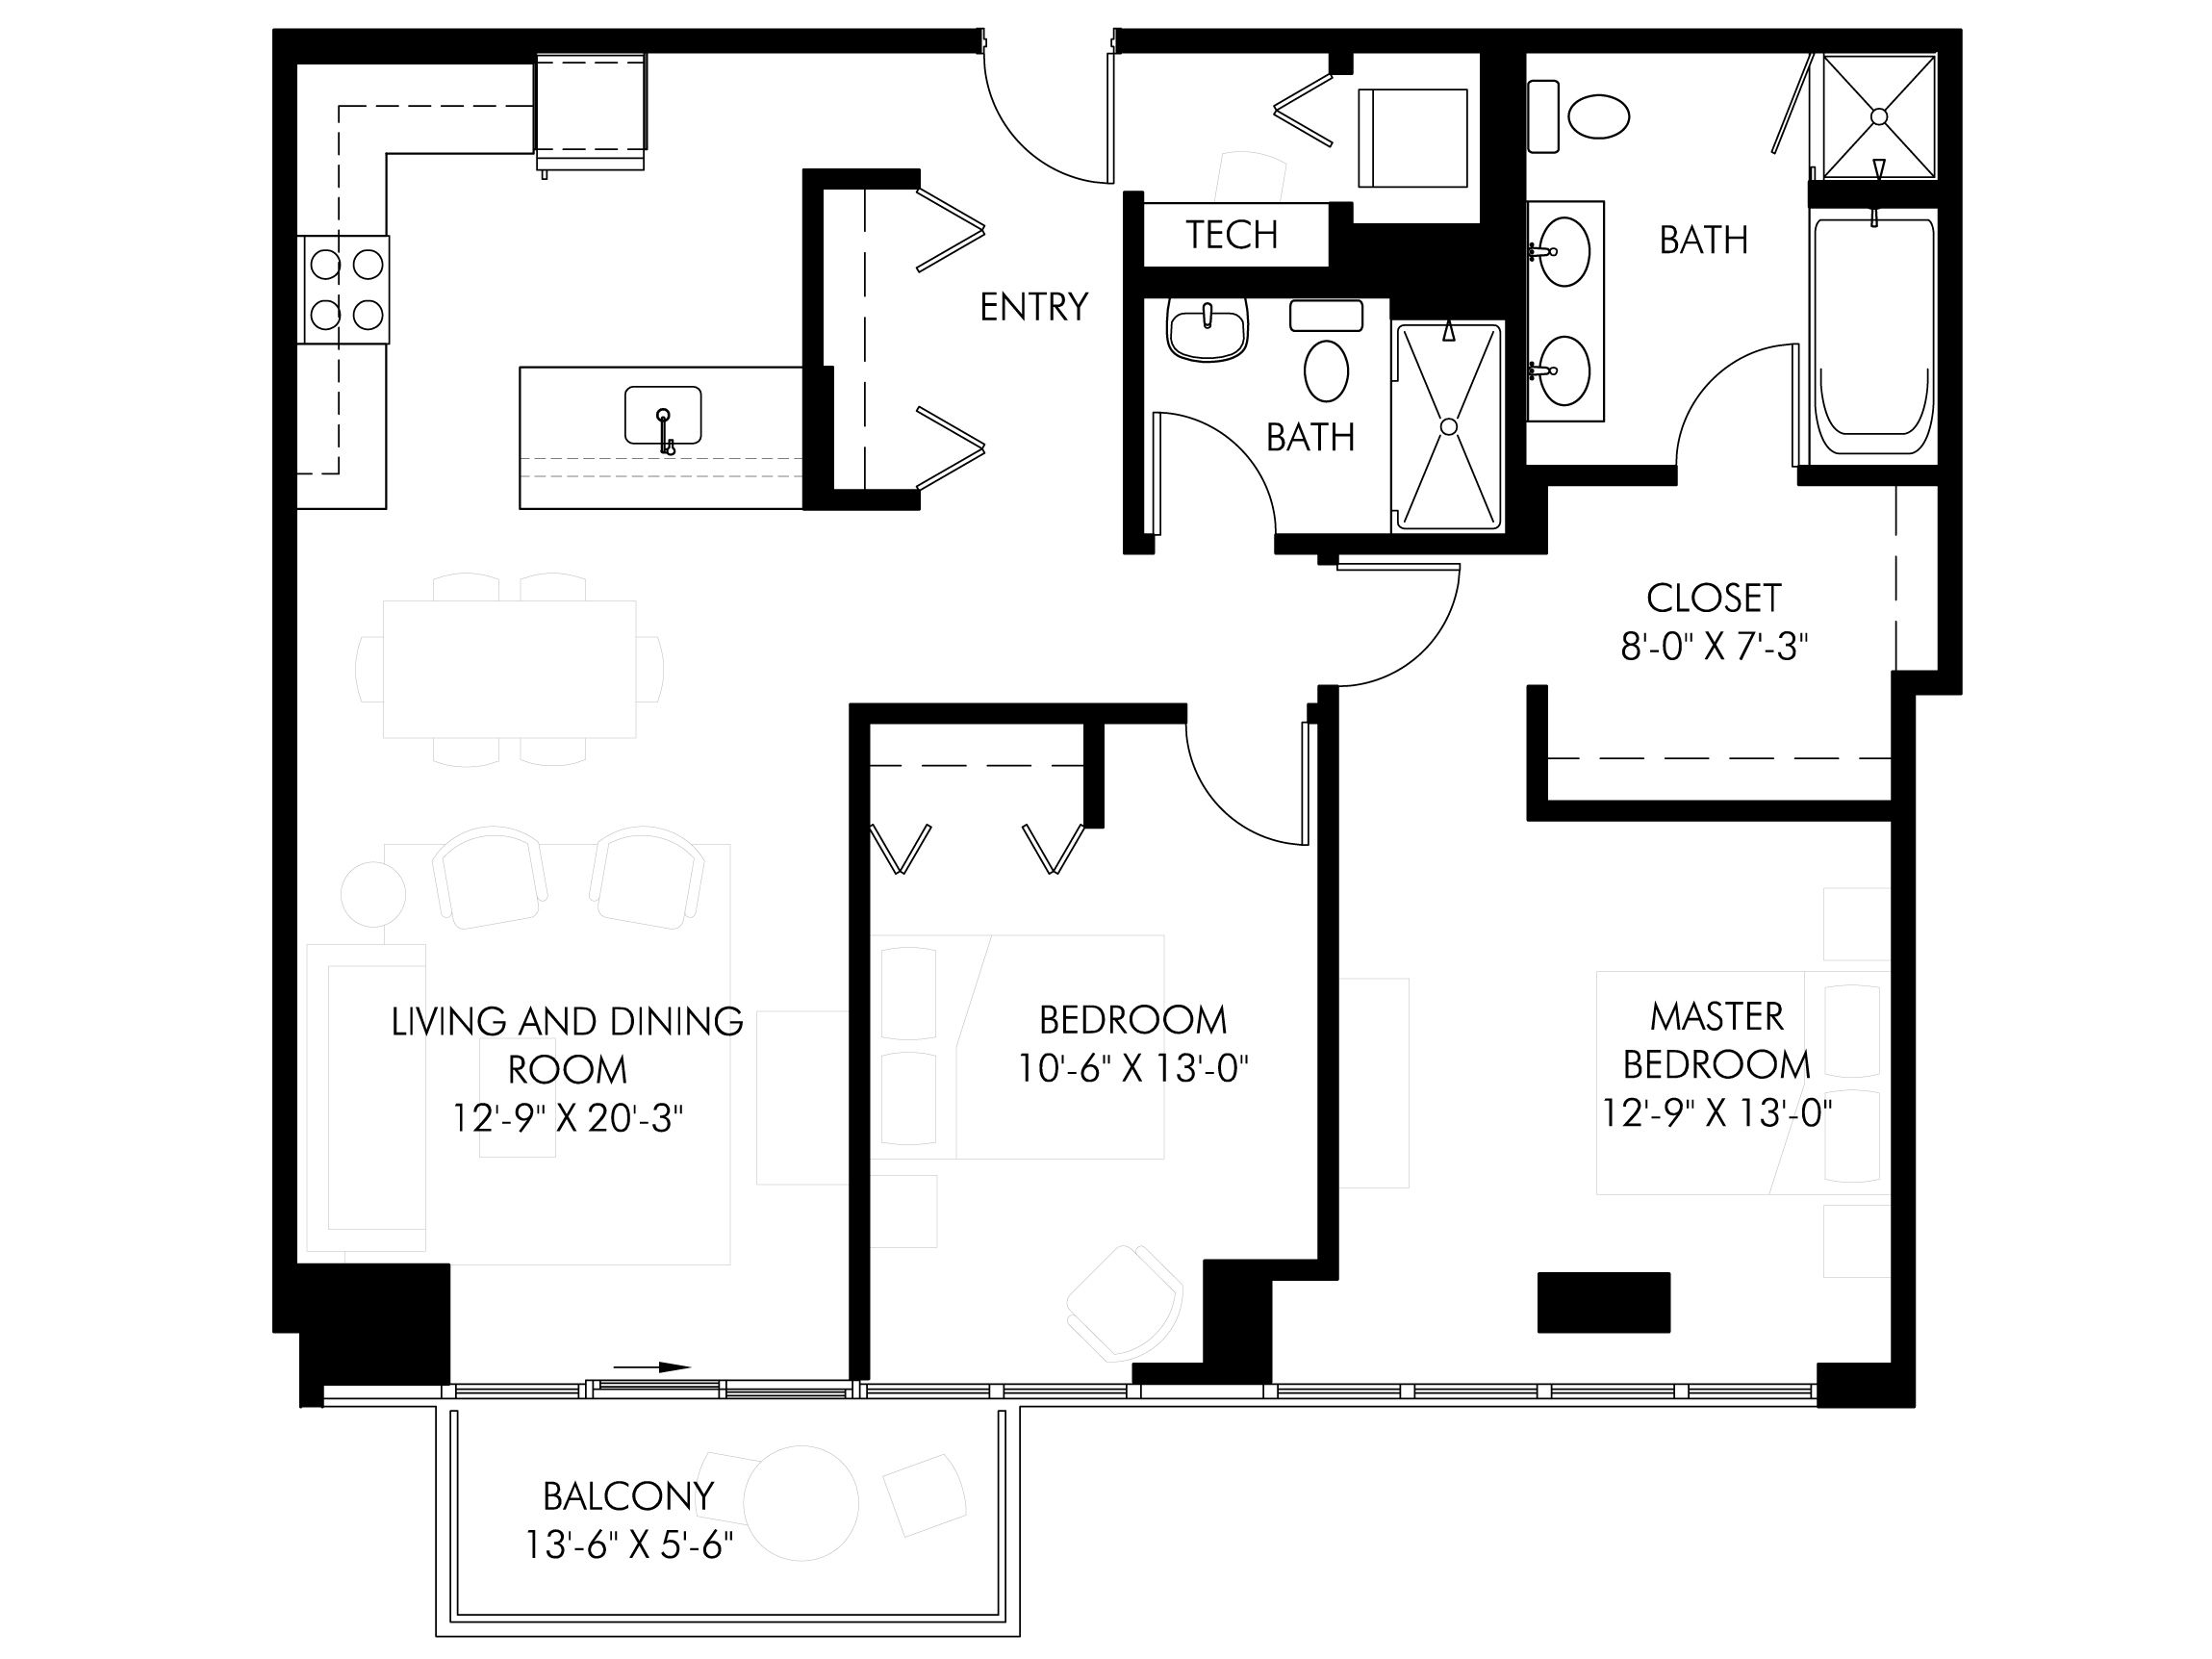 1000 Square Foot Floor Plans Unit 1216 1200 Square Feet Price 341000 Or 284 Per Square Foot Apartment Floor Plans Condo Floor Plans Floor Plans